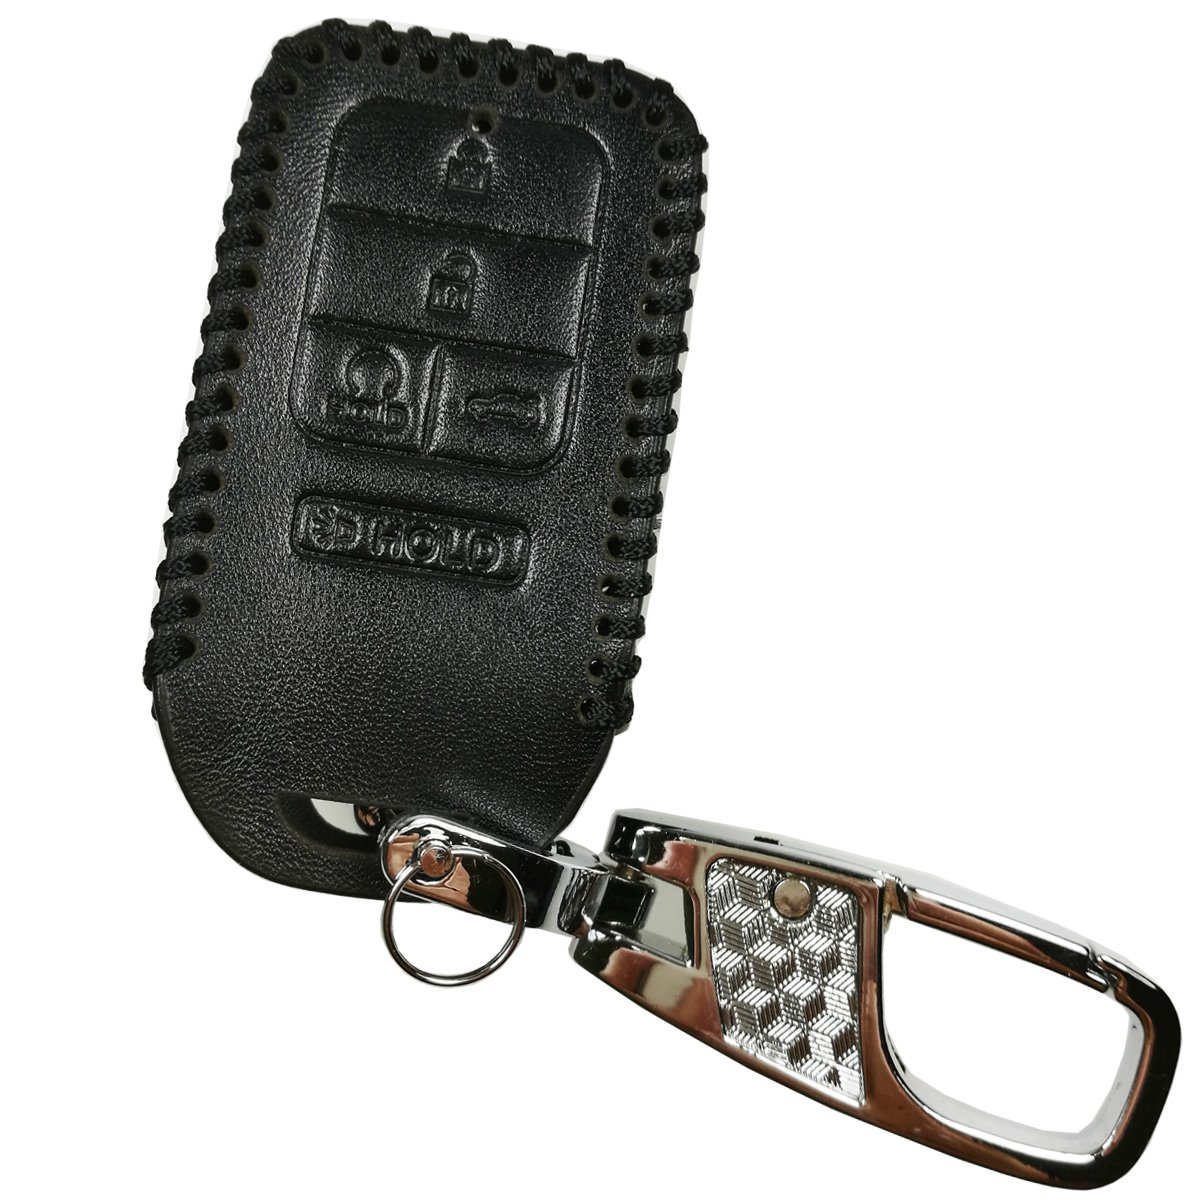 Alegender Hand Sew Leather Key Fob Cover Case Protector